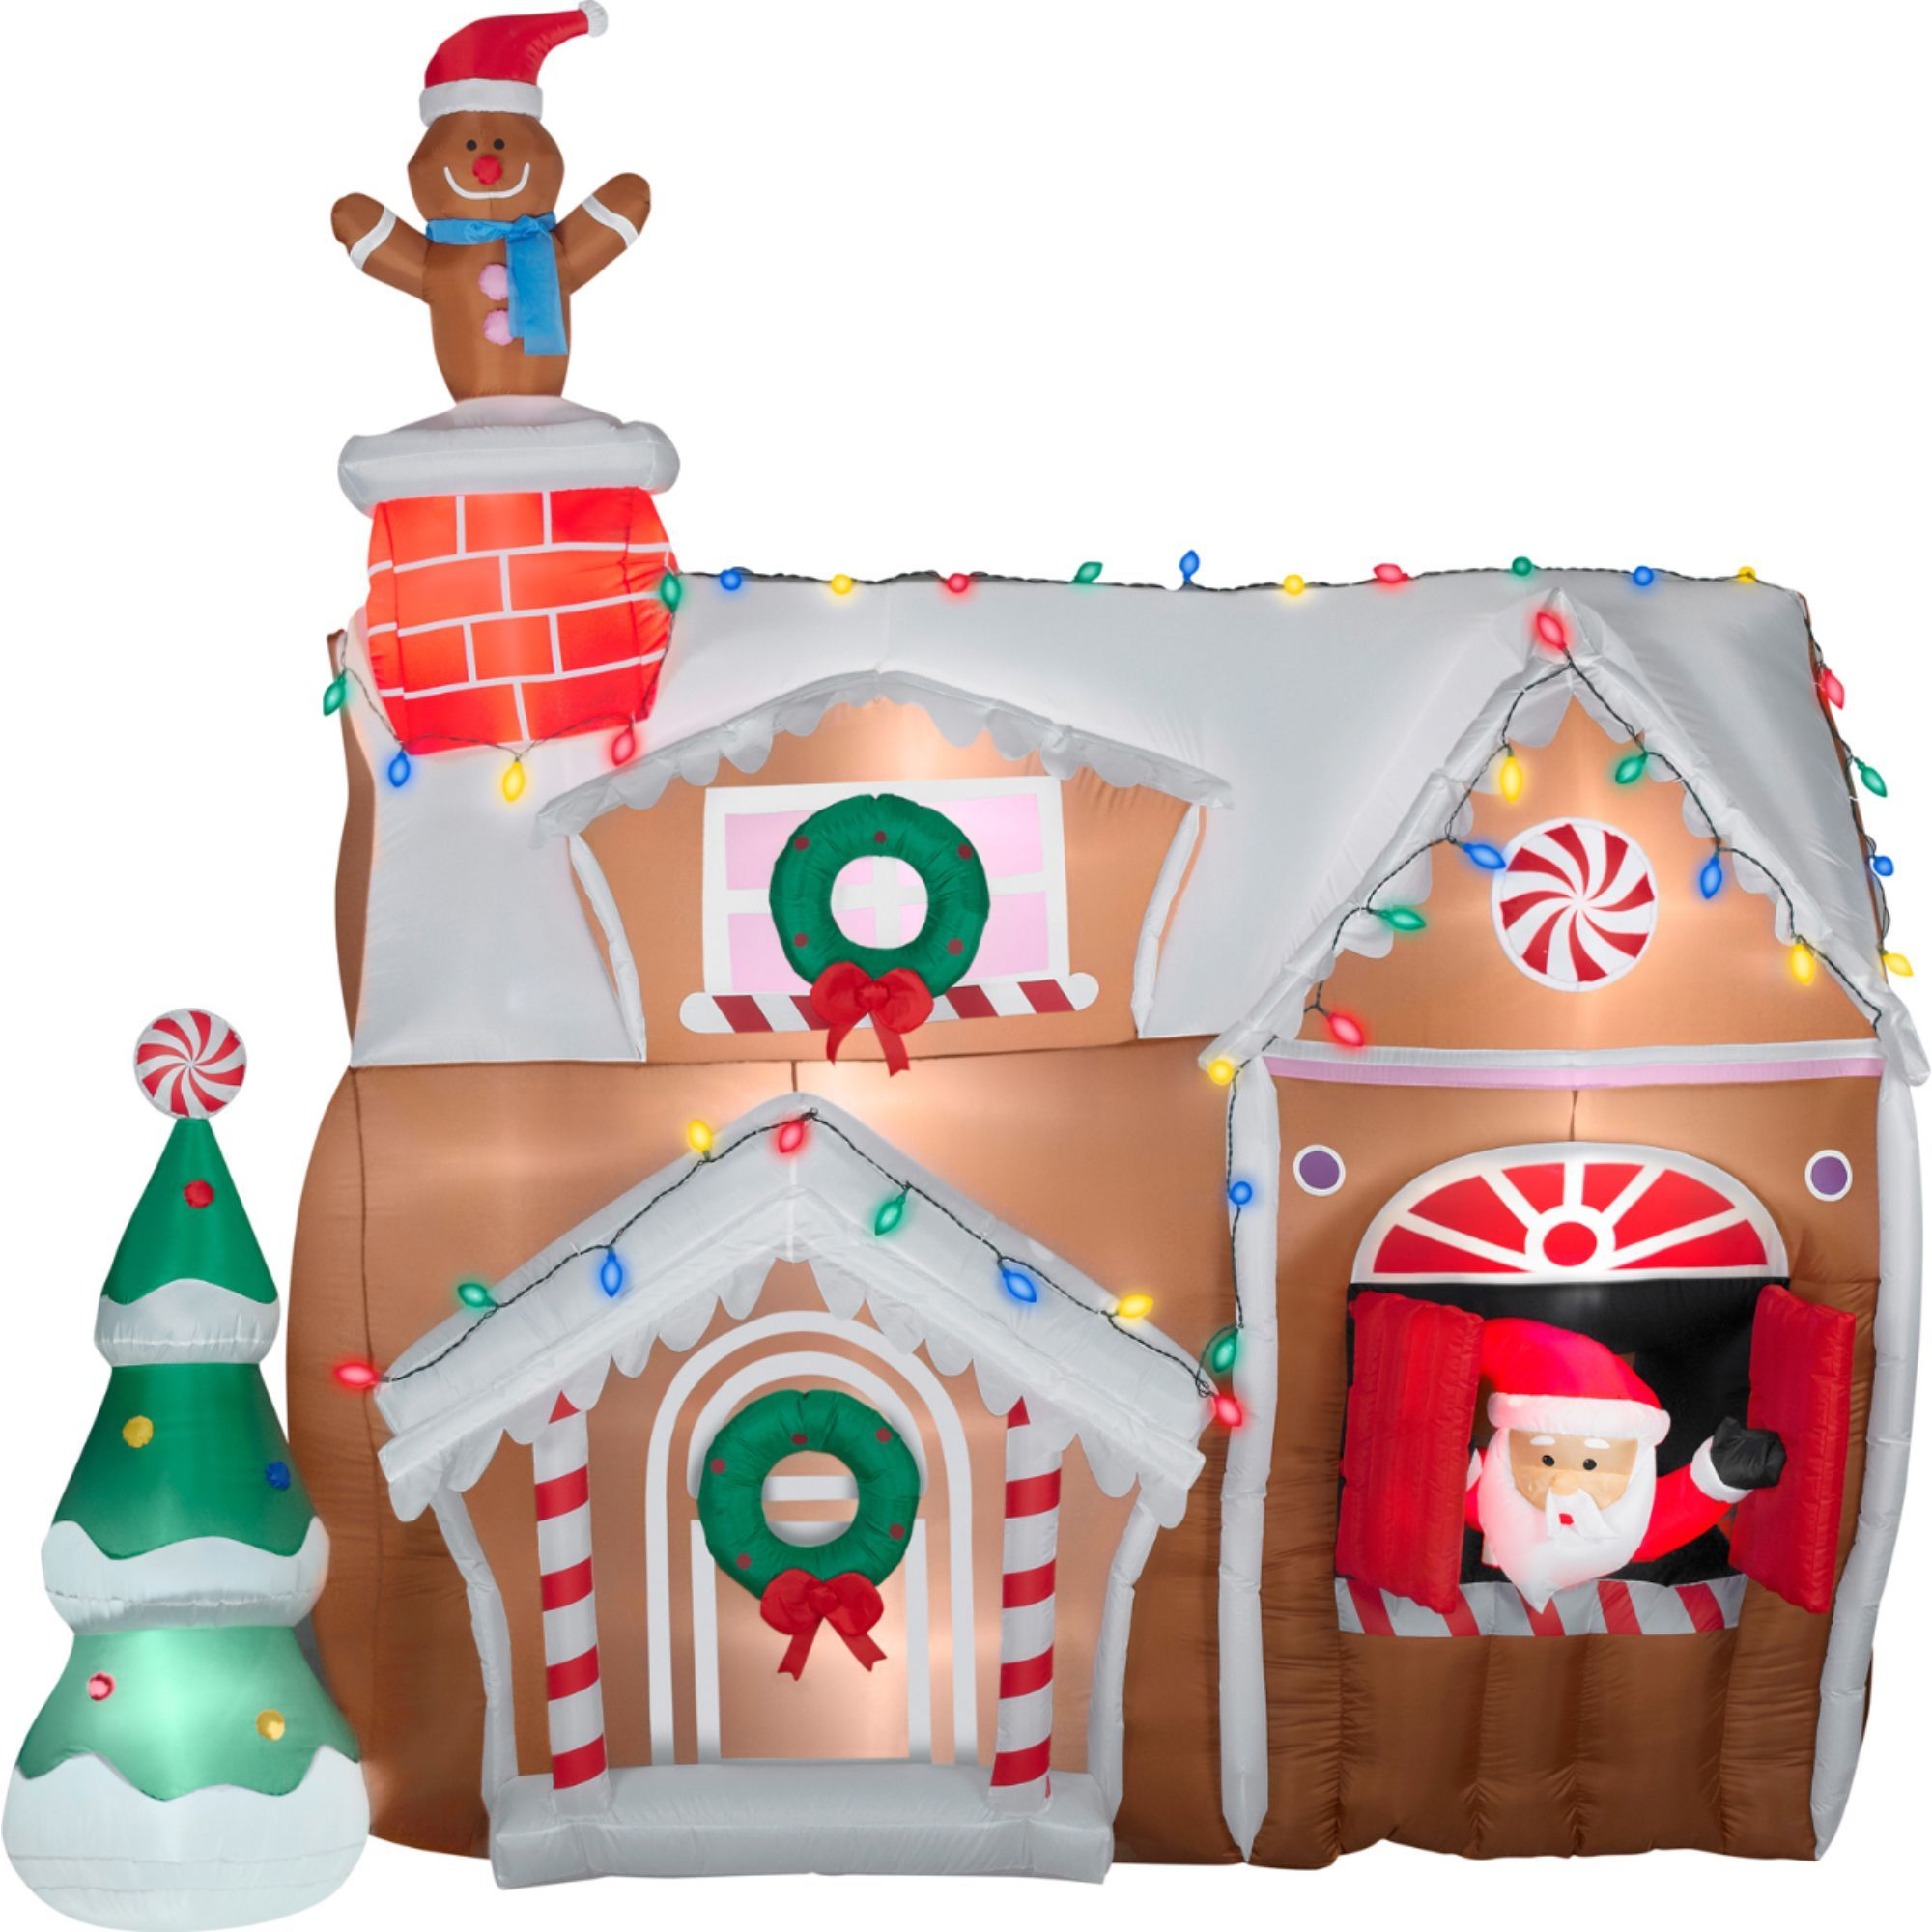 Gemmy inflatable airblown reindeer outdoor christmas decoration lowe - Gemmy Airblown Inflatables Animated Gingerbread House Outdoor Christmas Decorationsyard